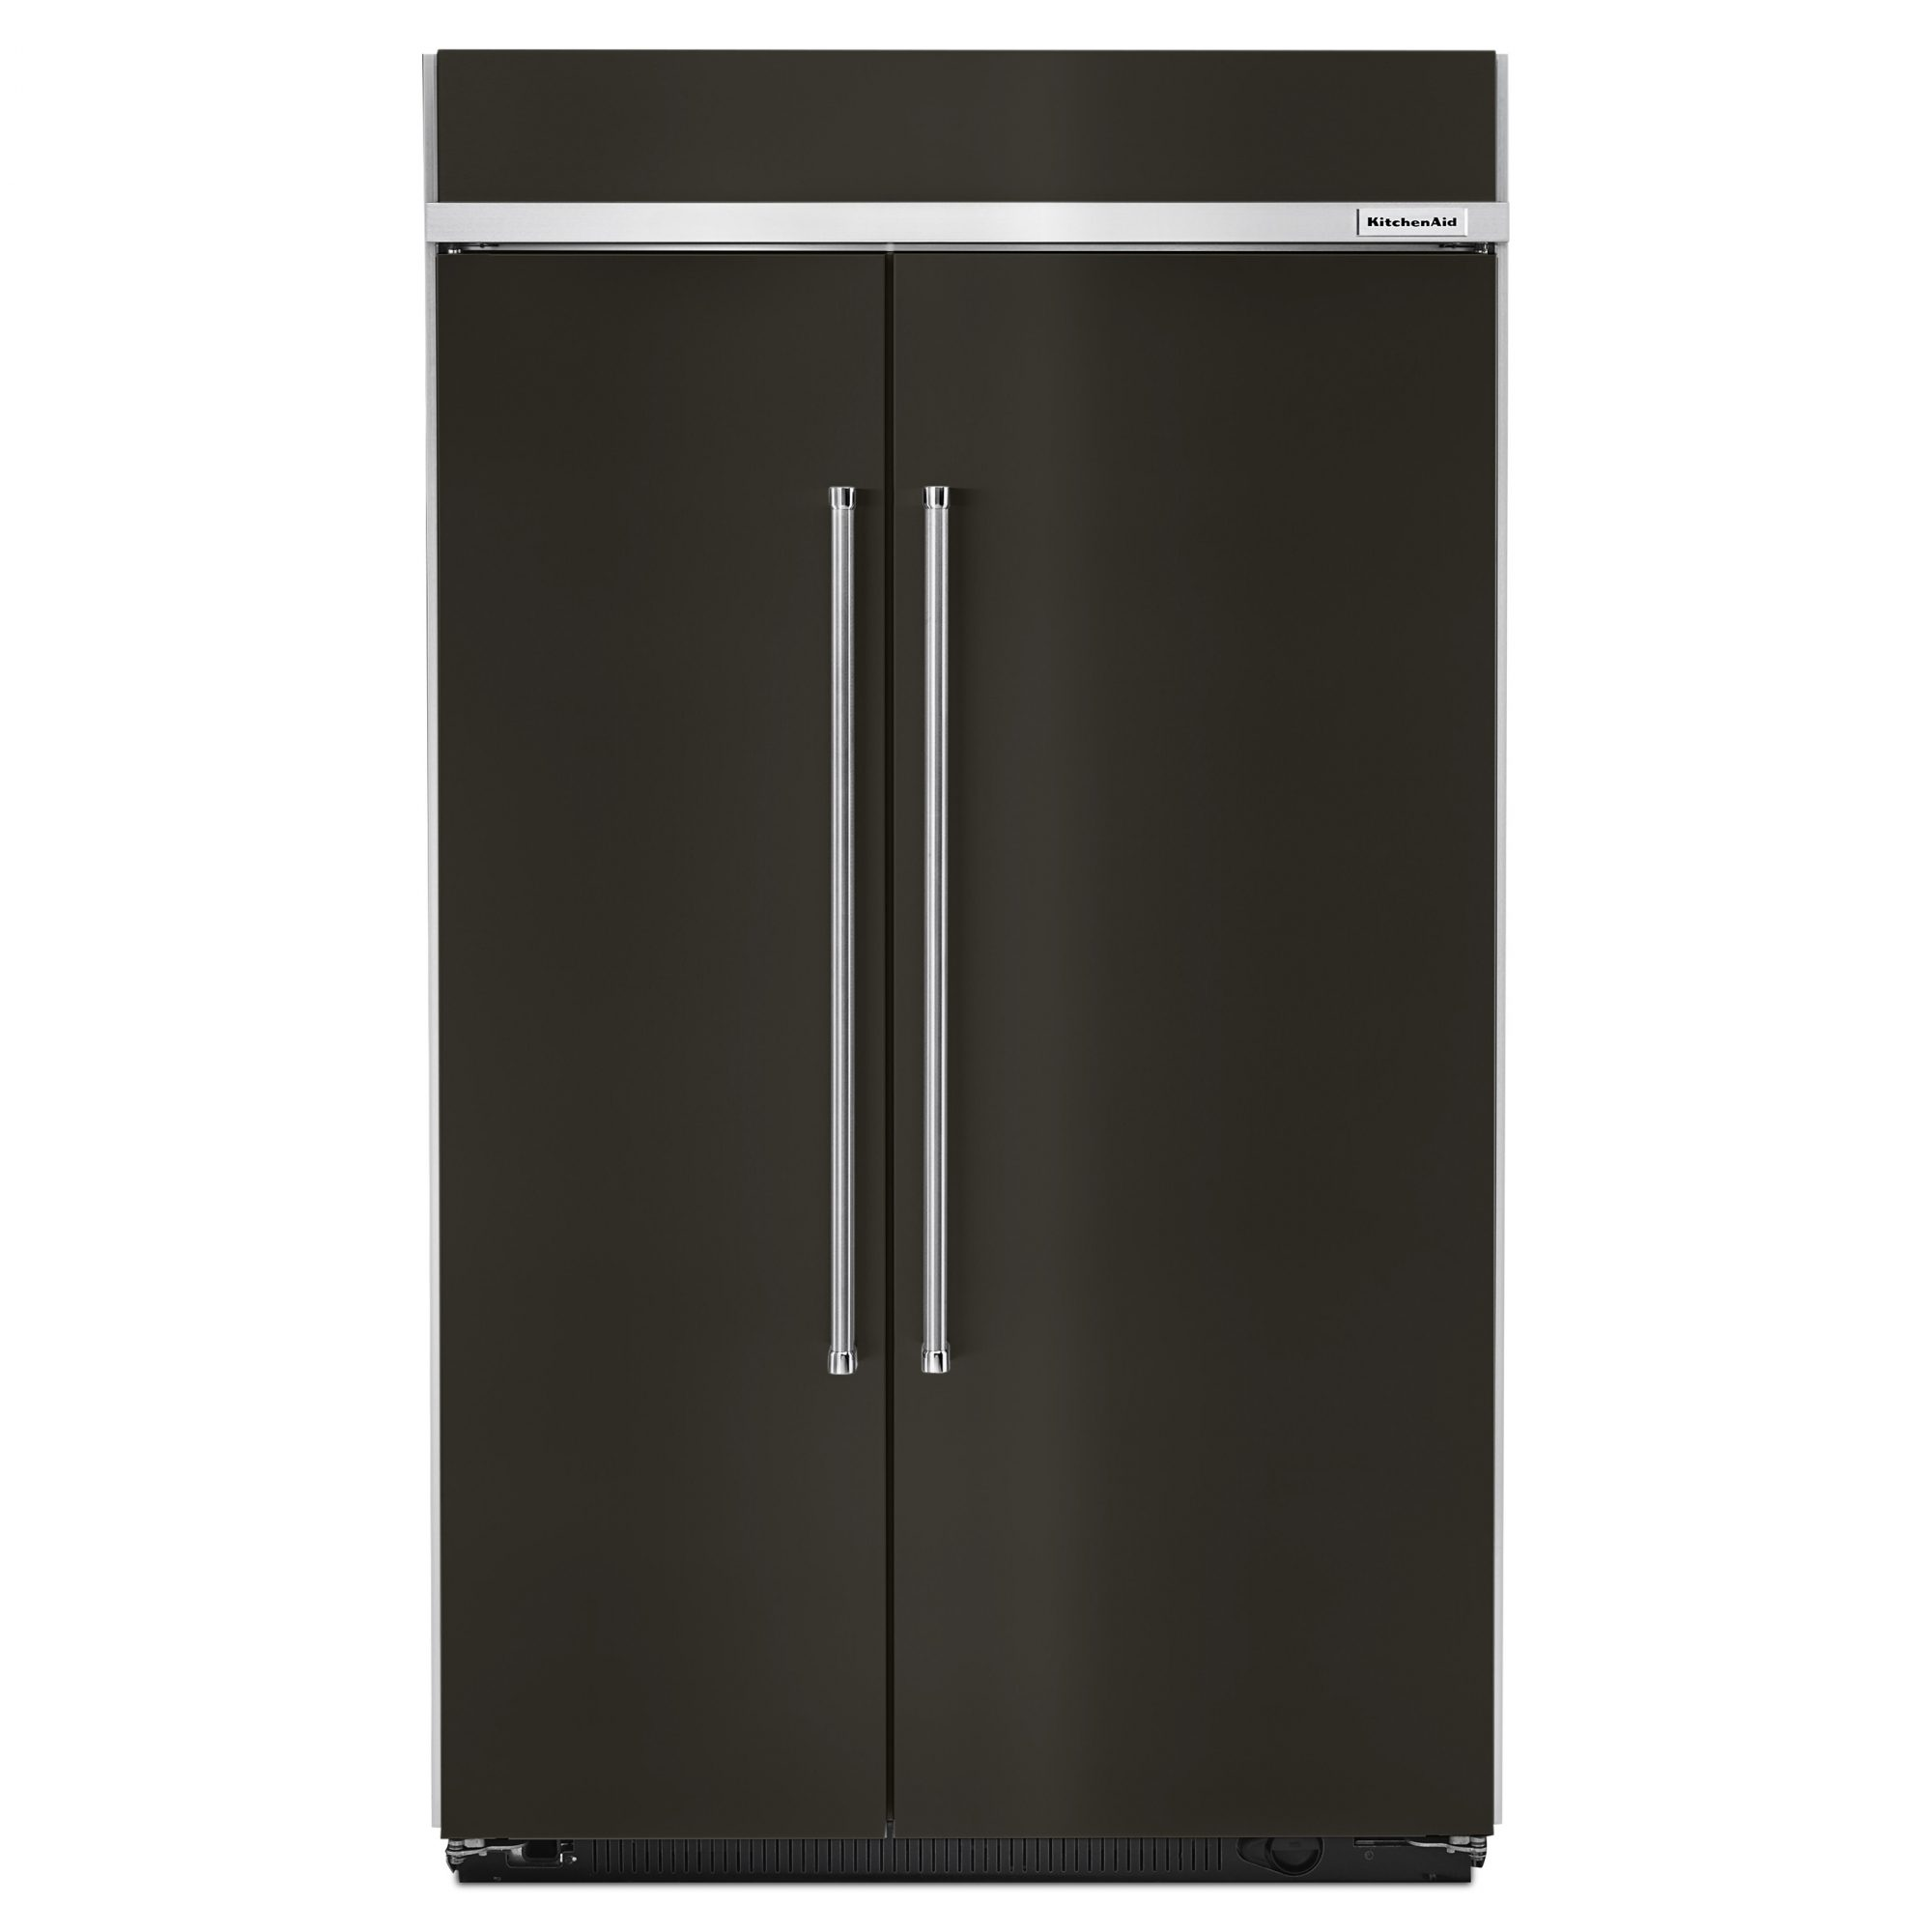 Exceptional Look At These Beautiful Matte Black Major Appliances: Refrigerator, Ranges,  Ovens And More | Food U0026 Wine